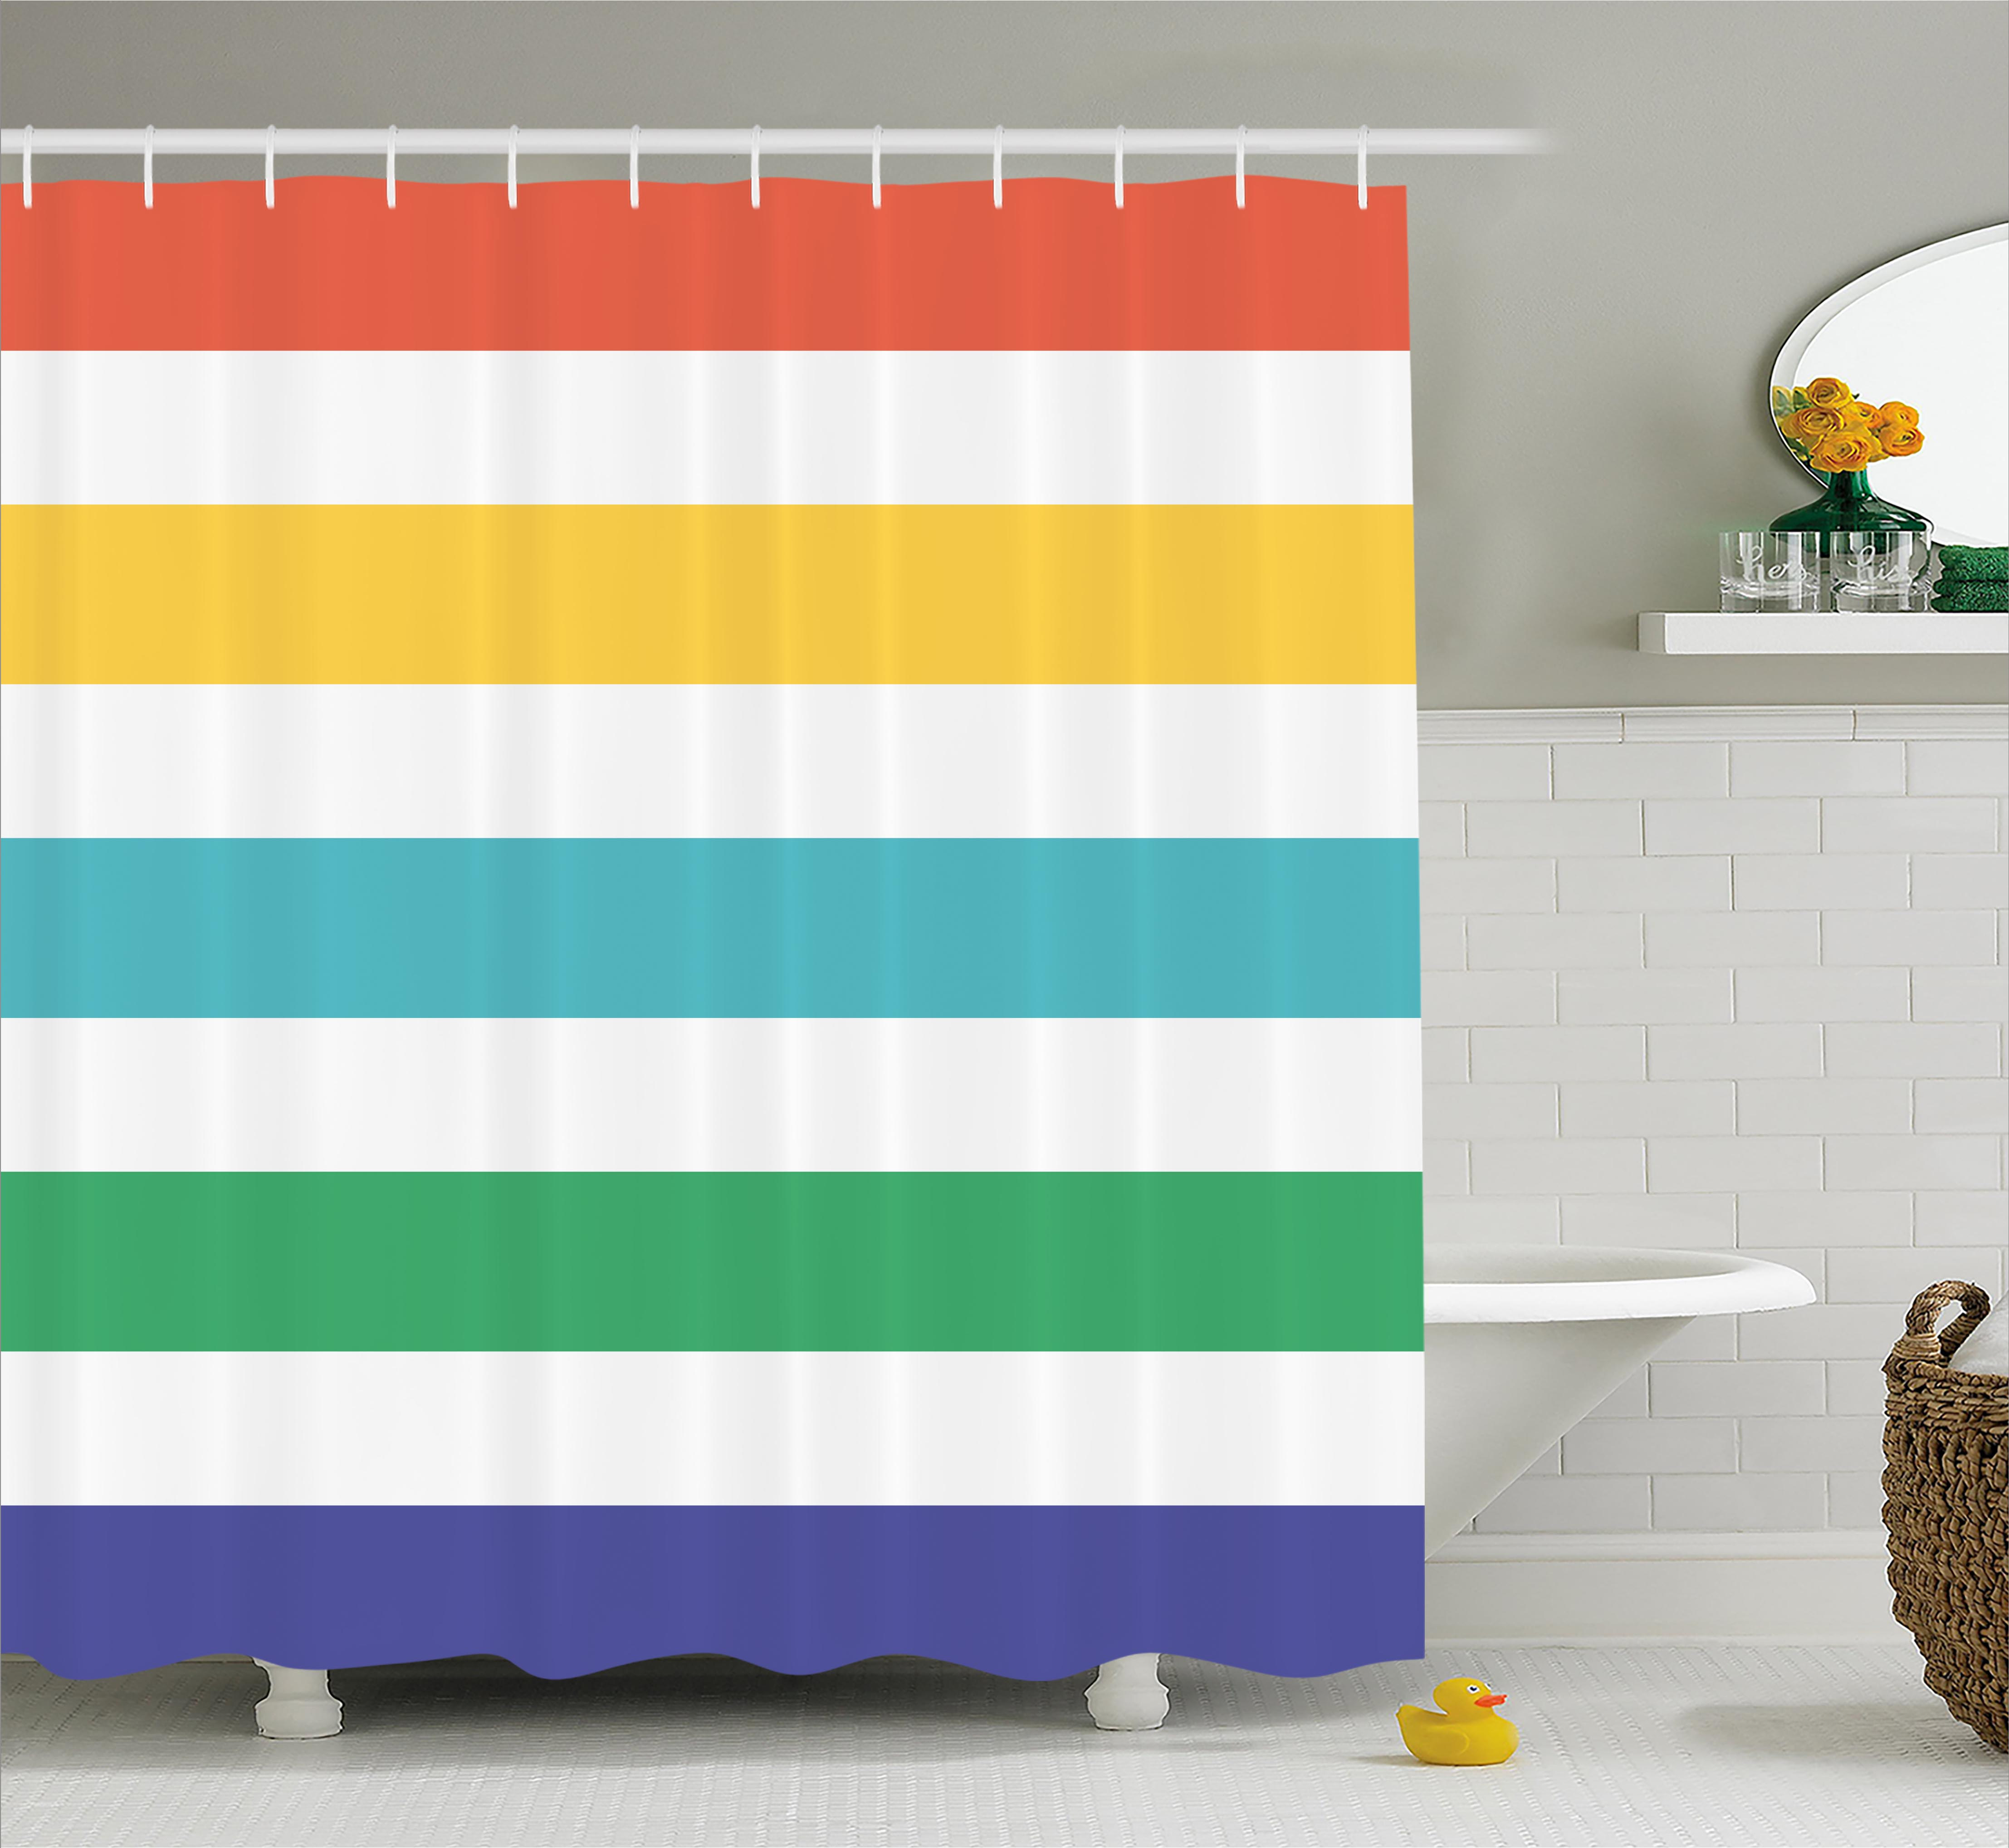 extra brown and red shower curtain. extra brown and red shower curtain  striped rainbow colored white fun Extra Brown And Red Shower Curtain Vegas Luxury Fabric